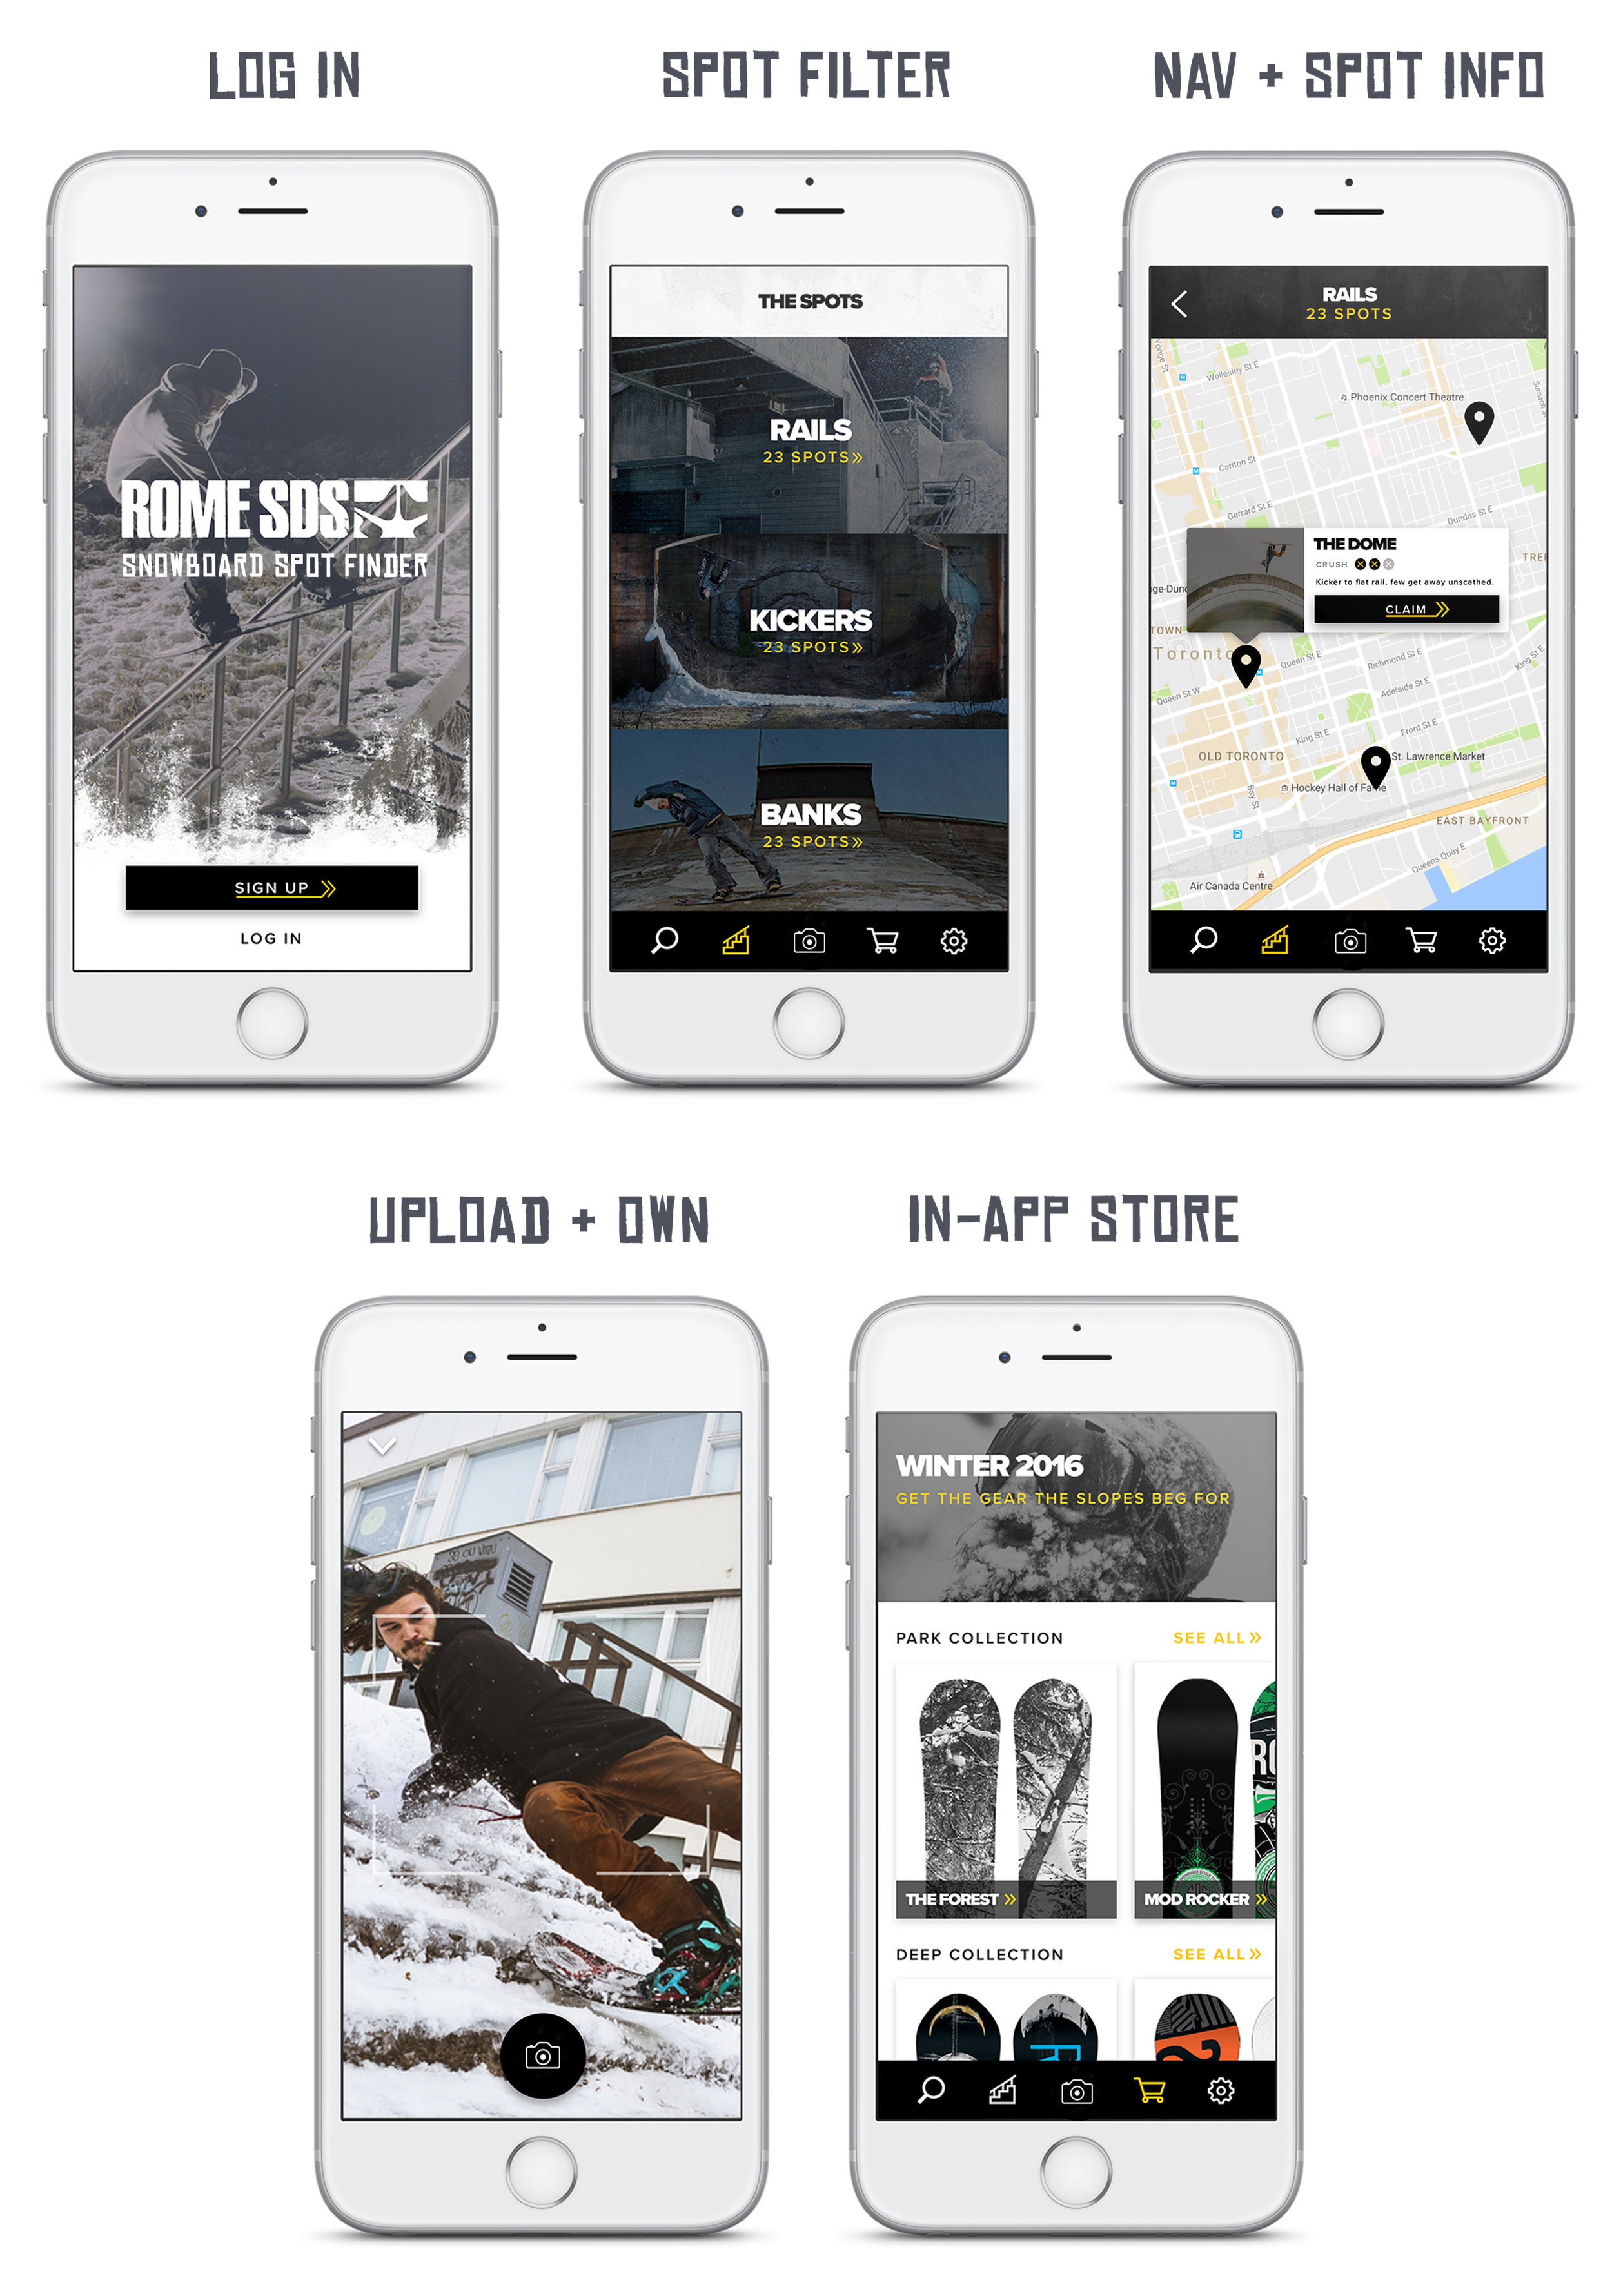 "Snowboarders use the Spot Finder App to locate street snowboard spots, rate their difficulty, upload photos and videos to ""own"" the spot, and purchase Rome products from their phone."